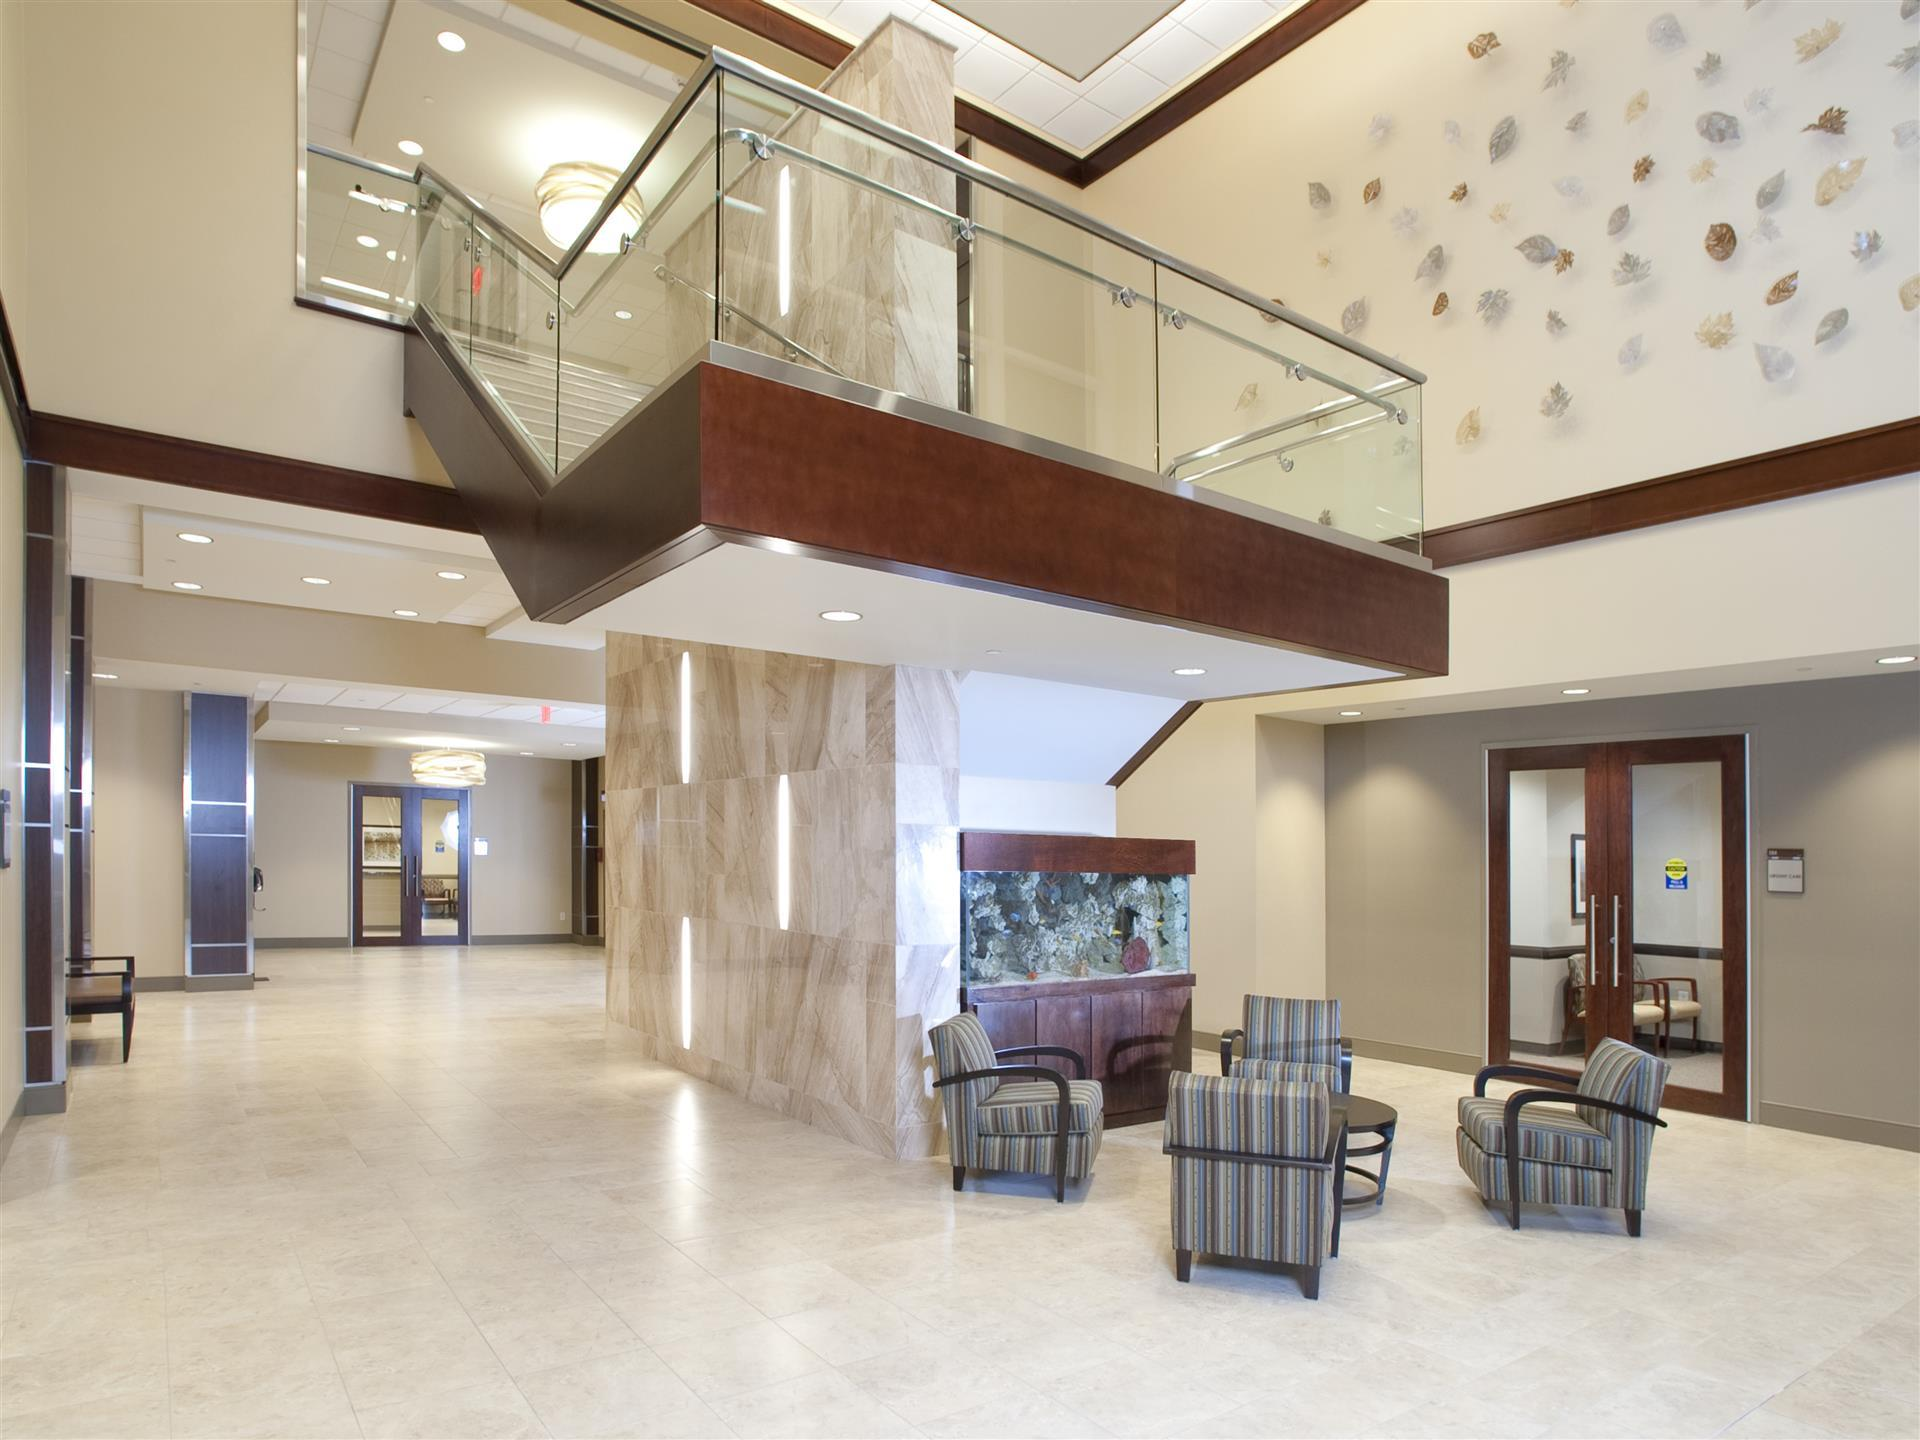 Two story lobby with chairs